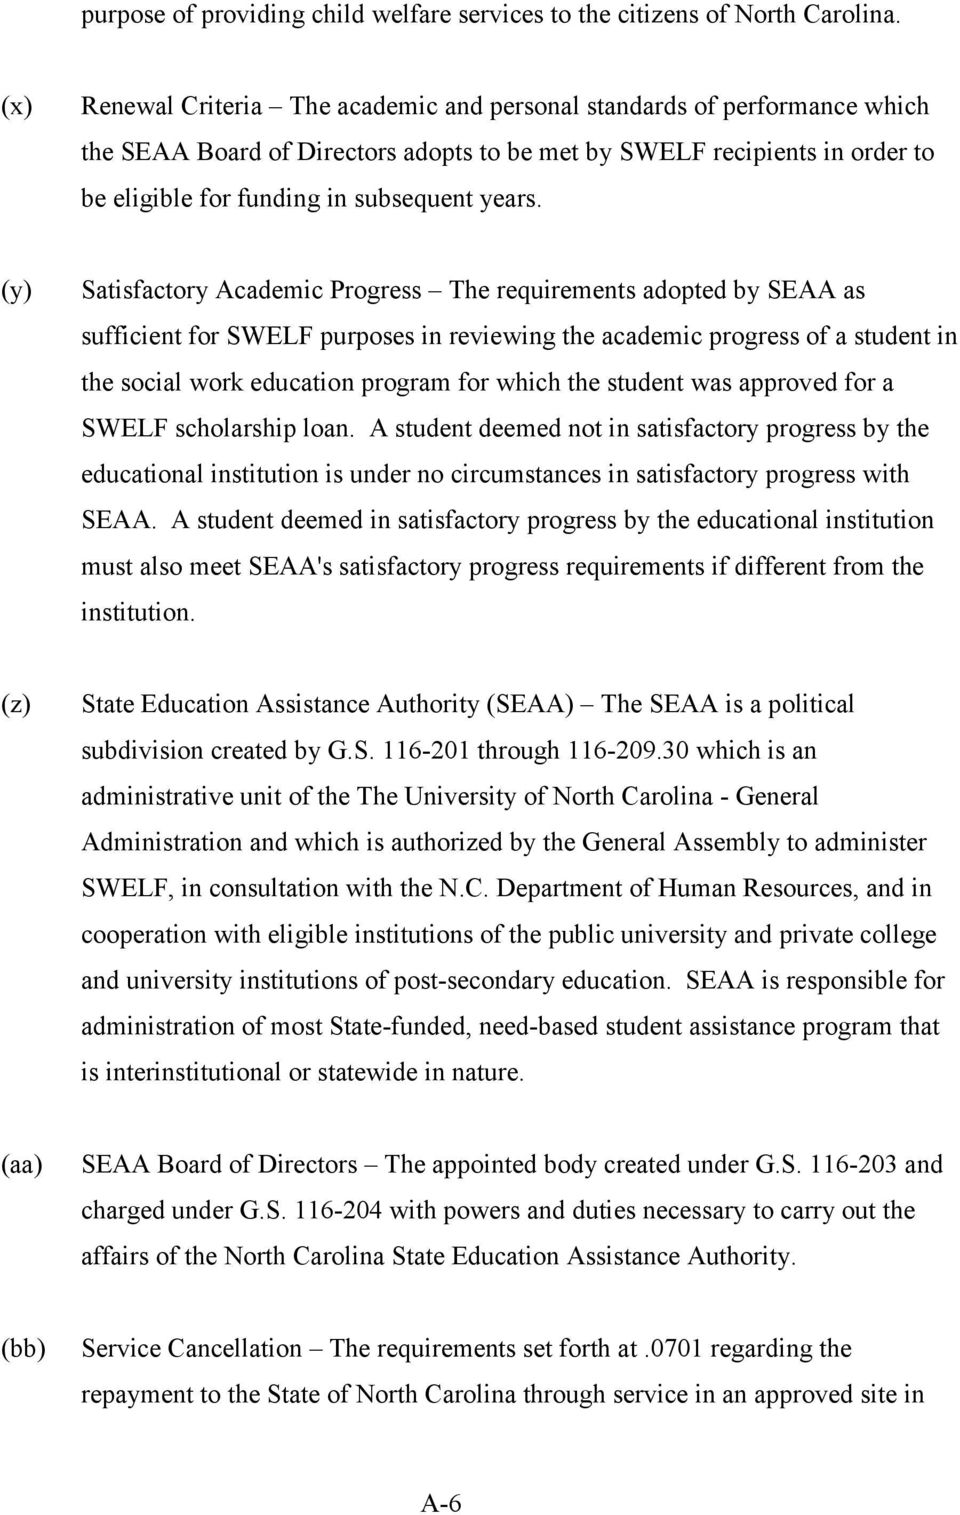 (y) Satisfactory Academic Progress The requirements adopted by SEAA as sufficient for SWELF purposes in reviewing the academic progress of a student in the social work education program for which the